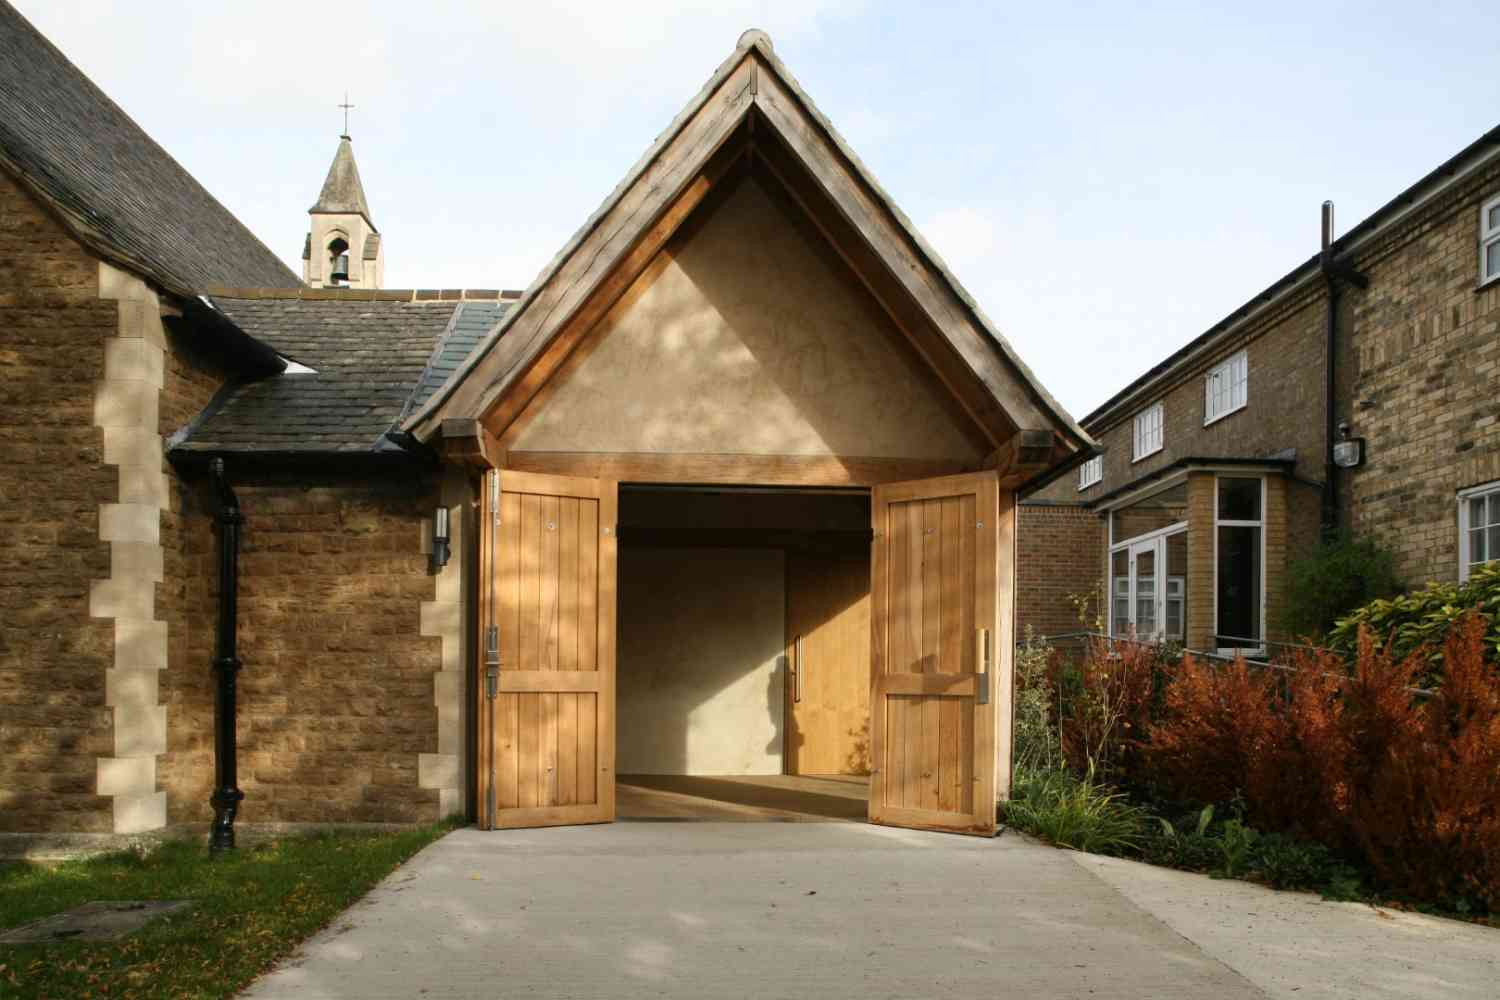 New entrance, Mottingham - An oak framed entrance to a church in Mottingham